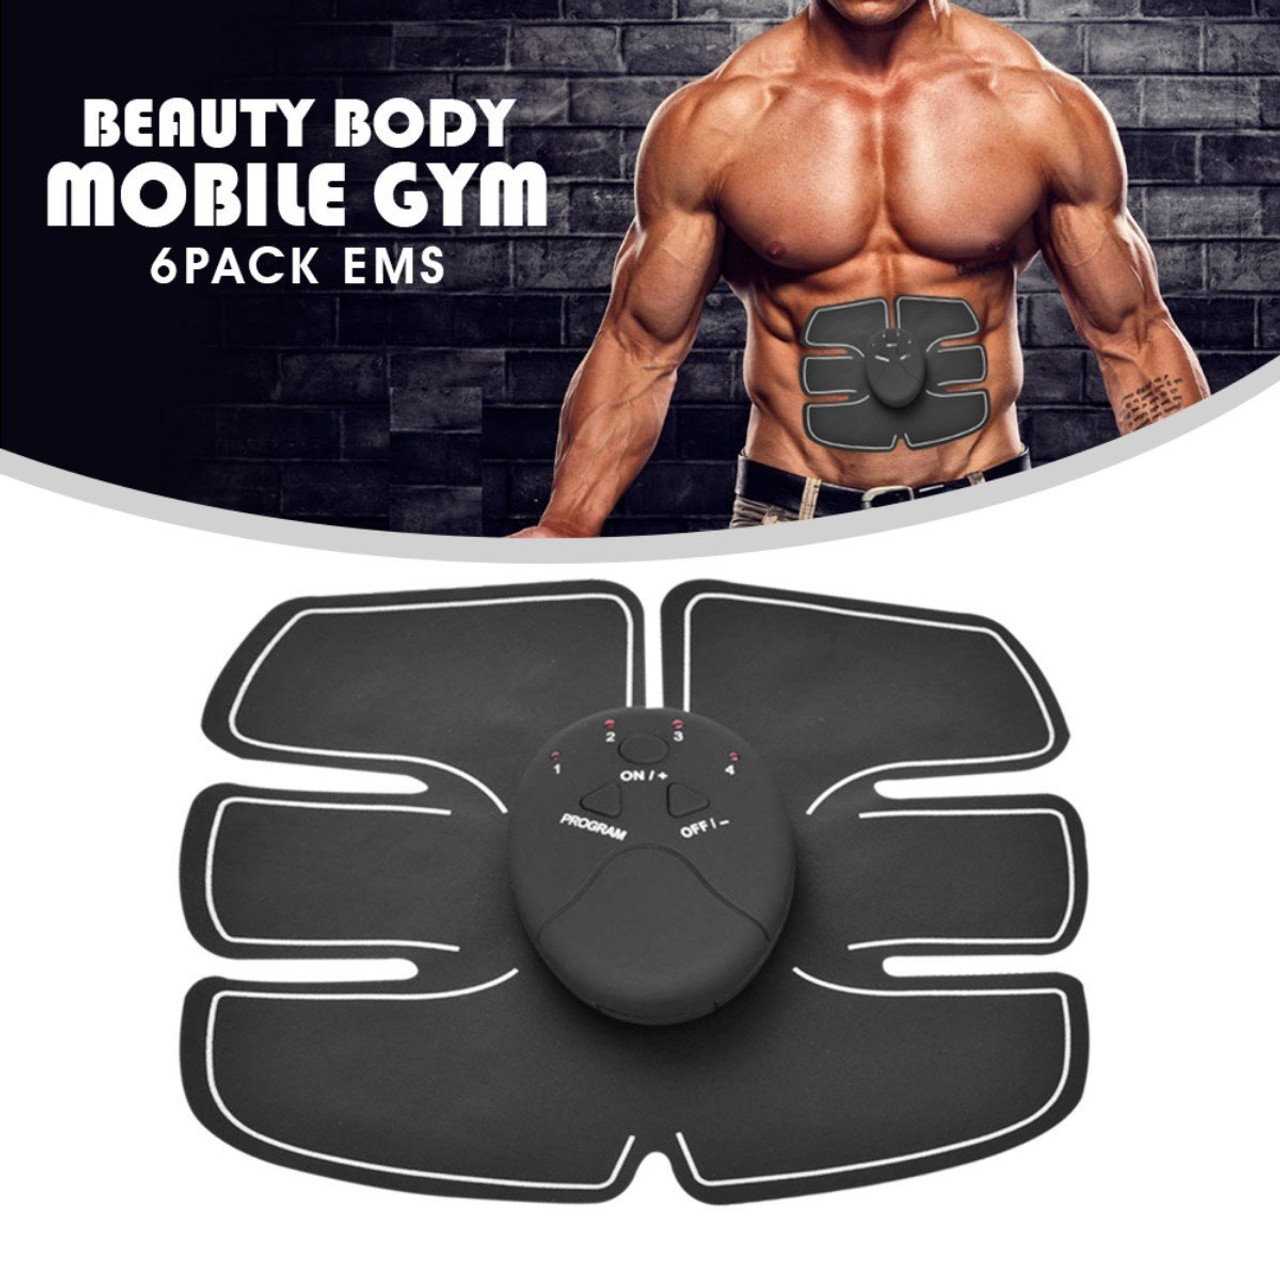 6 Pack Abs Abdominal Toning Toner Fitness Workout Stomach Muscle Gym Belt Hot! Sports & Entertainment Fitness Equipments